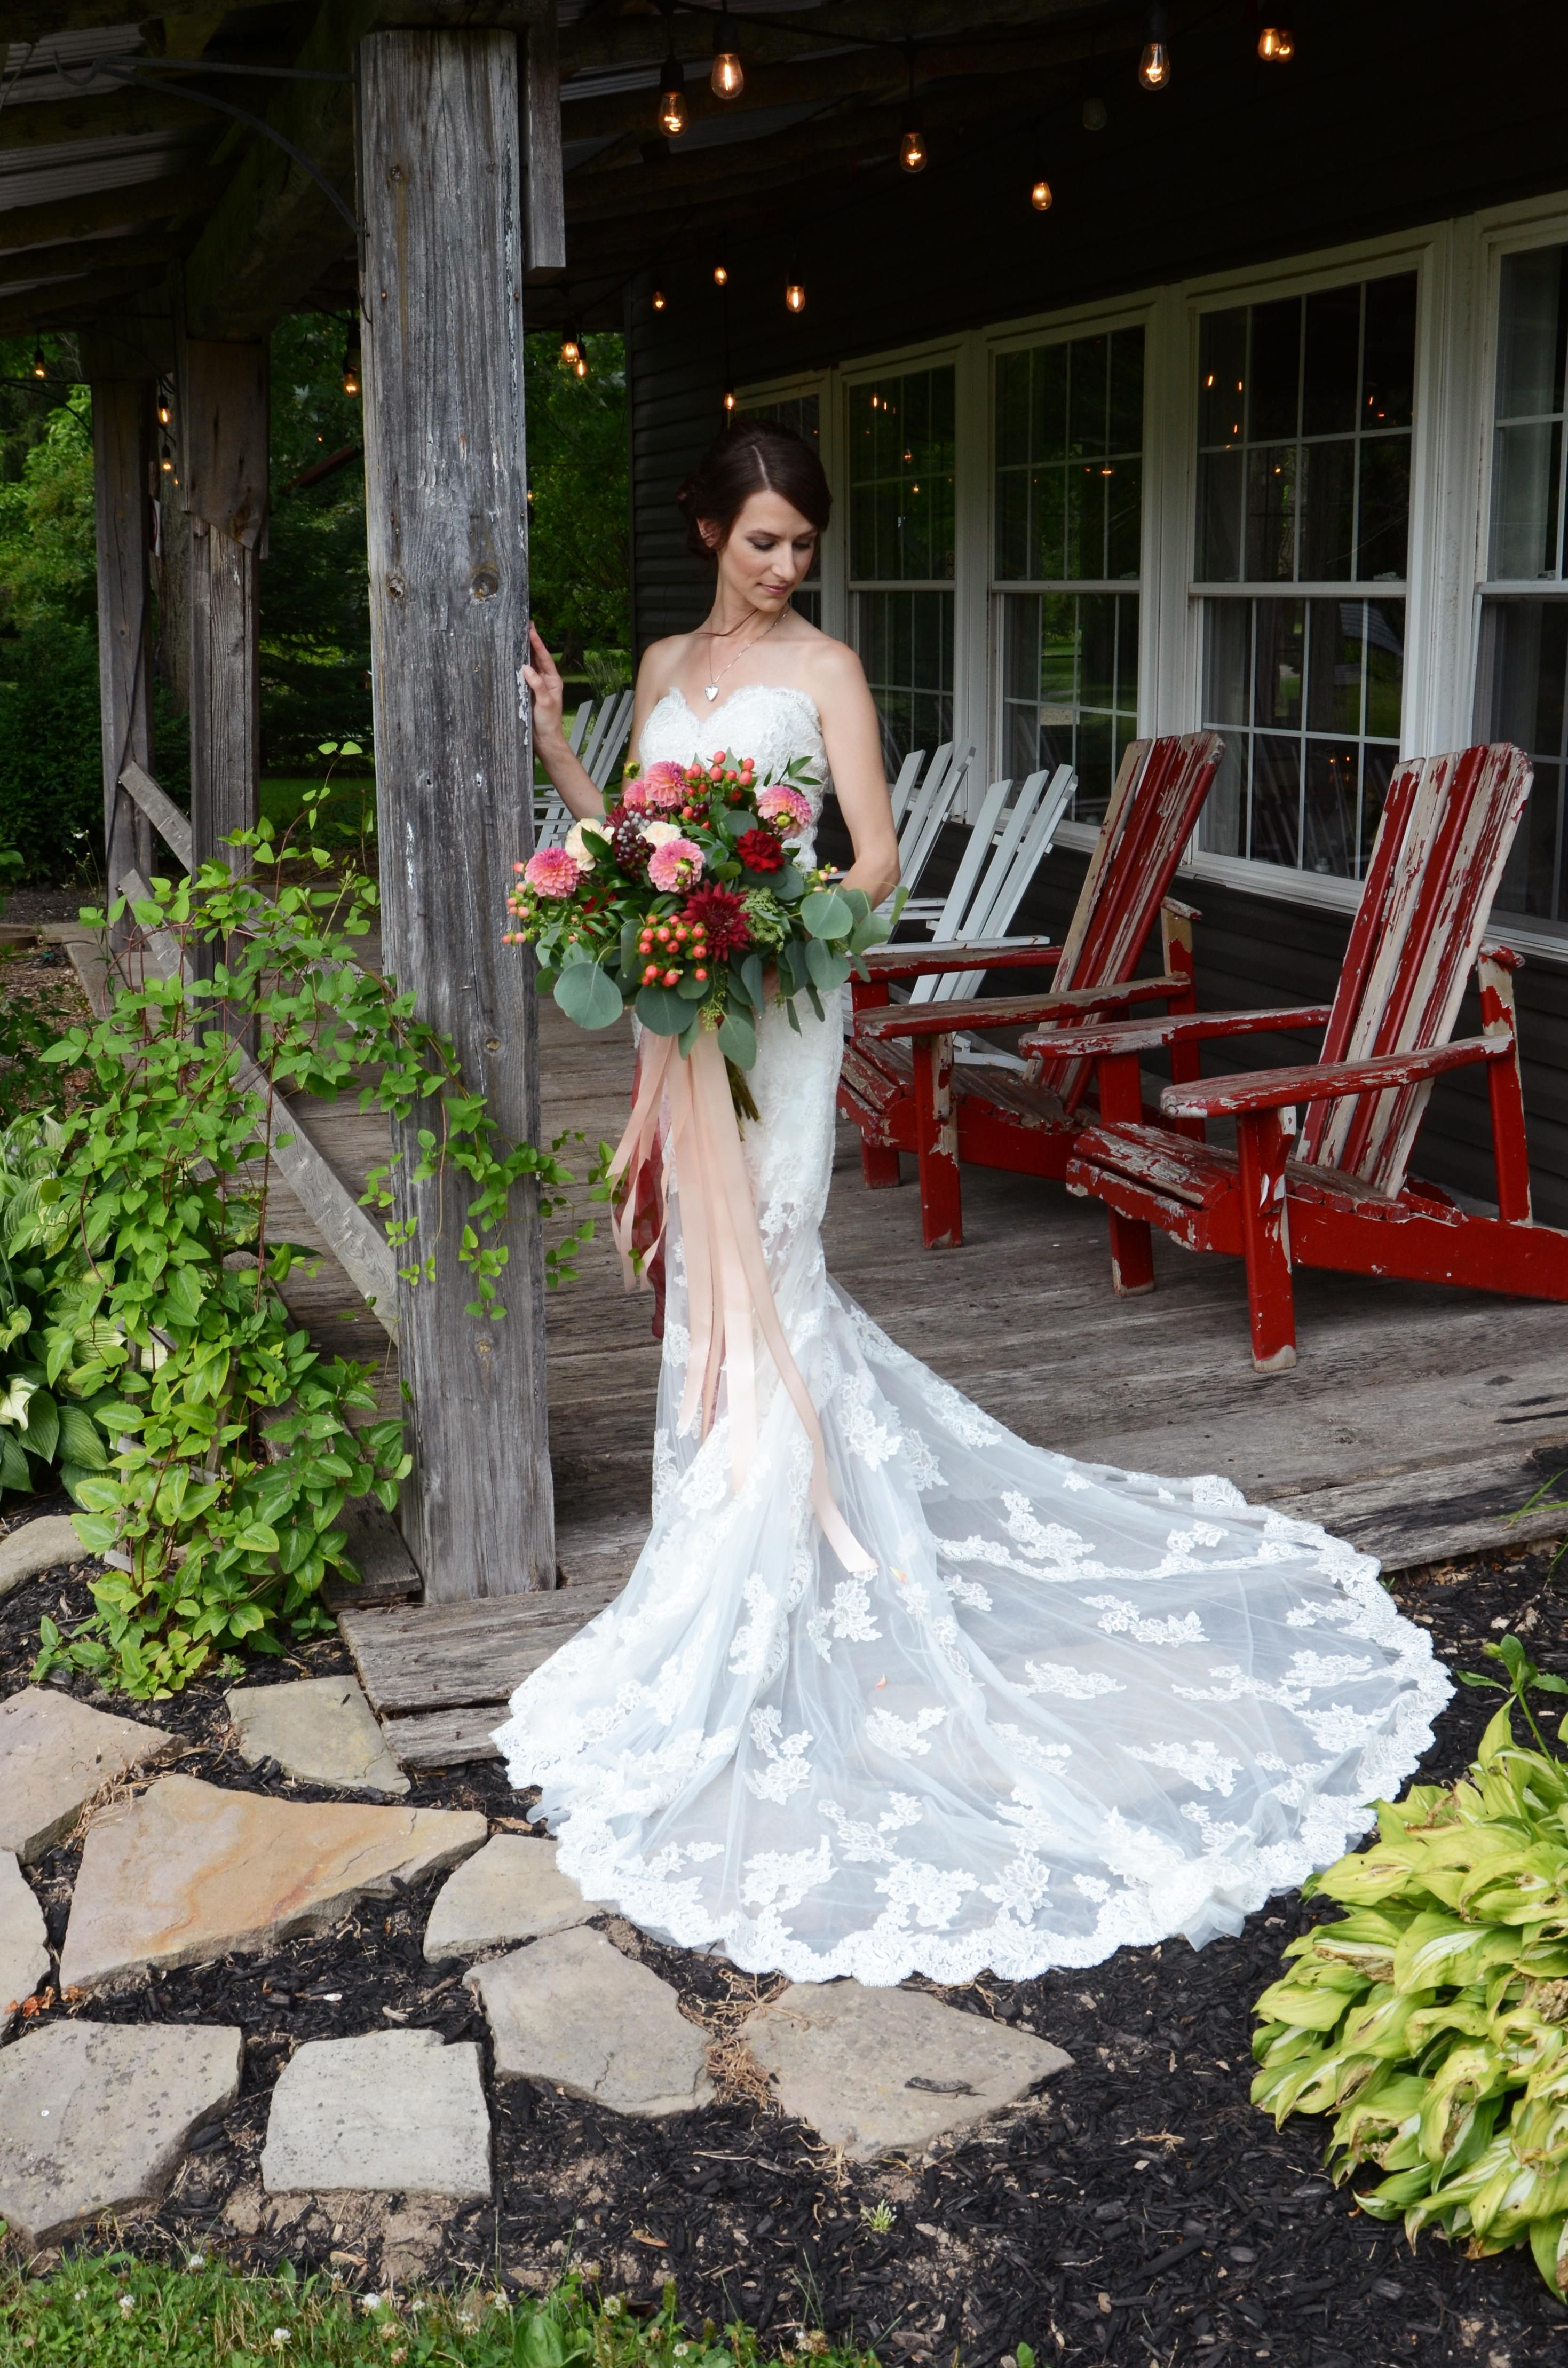 Columbia Photos a beautiful wedding dress photo is a